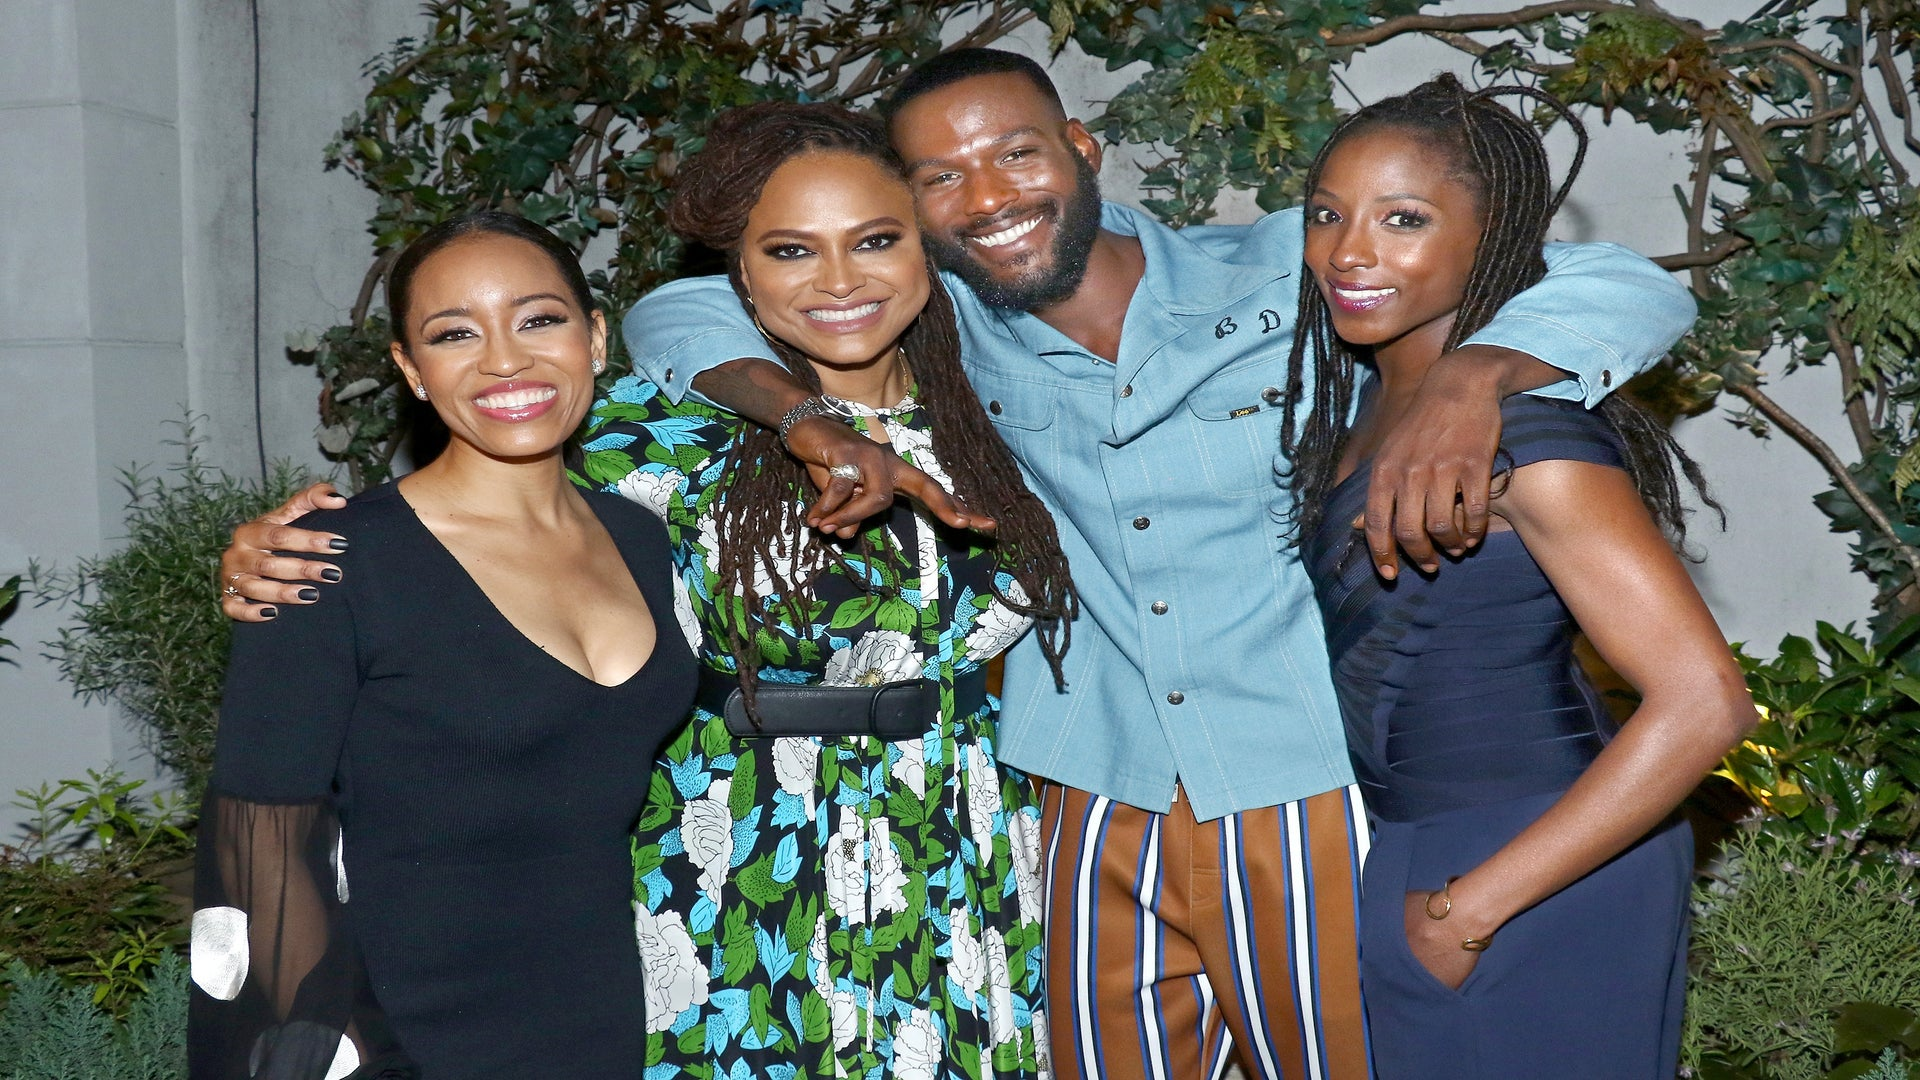 Ava Duvernay And Friends Got Down New Orleans Style To Celebrate The Return Of 'Queen Sugar'